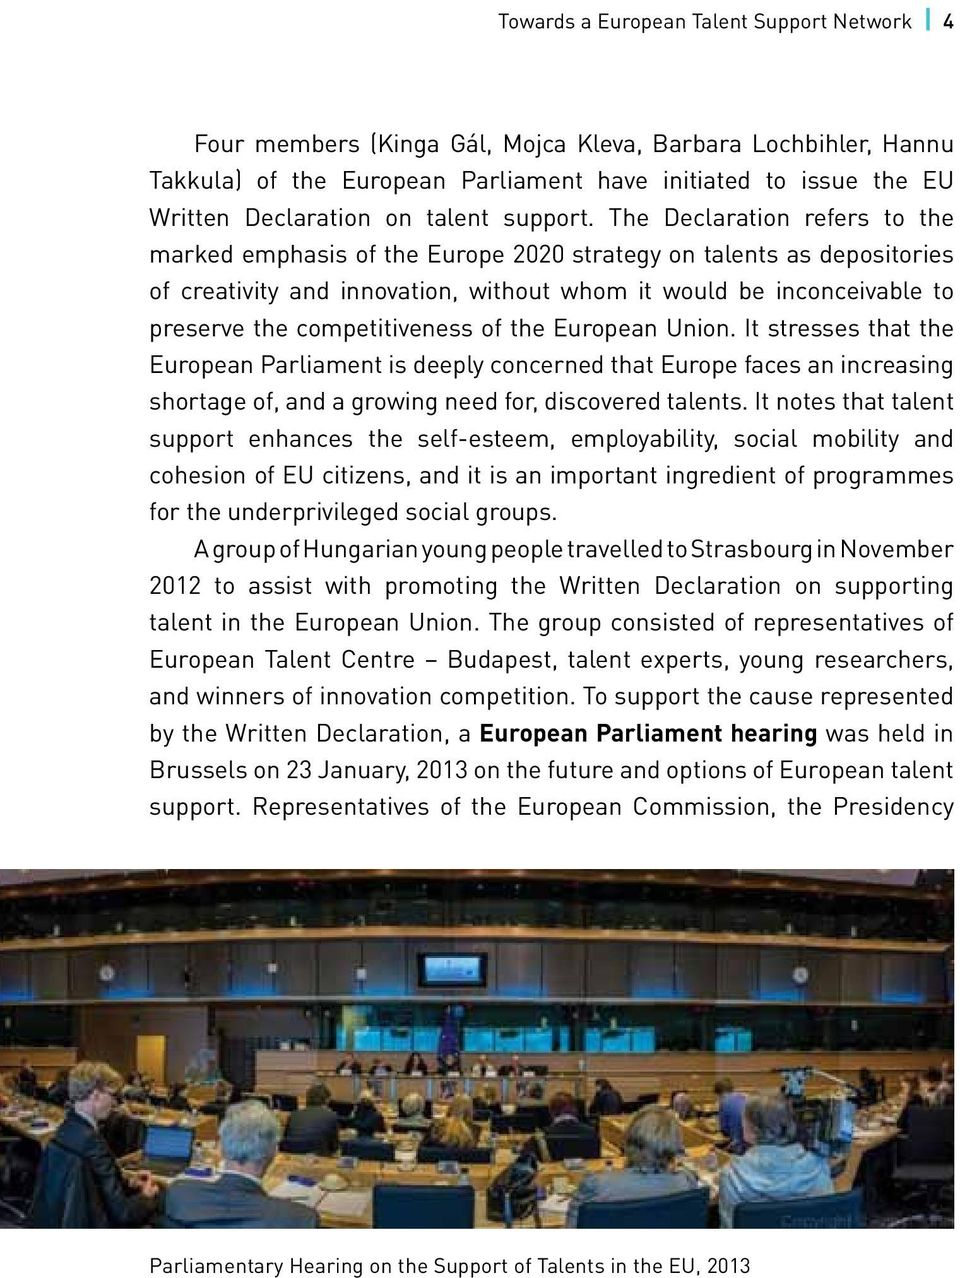 The Declaration refers to the marked emphasis of the Europe 2020 strategy on talents as depositories of creativity and innovation, without whom it would be inconceivable to preserve the